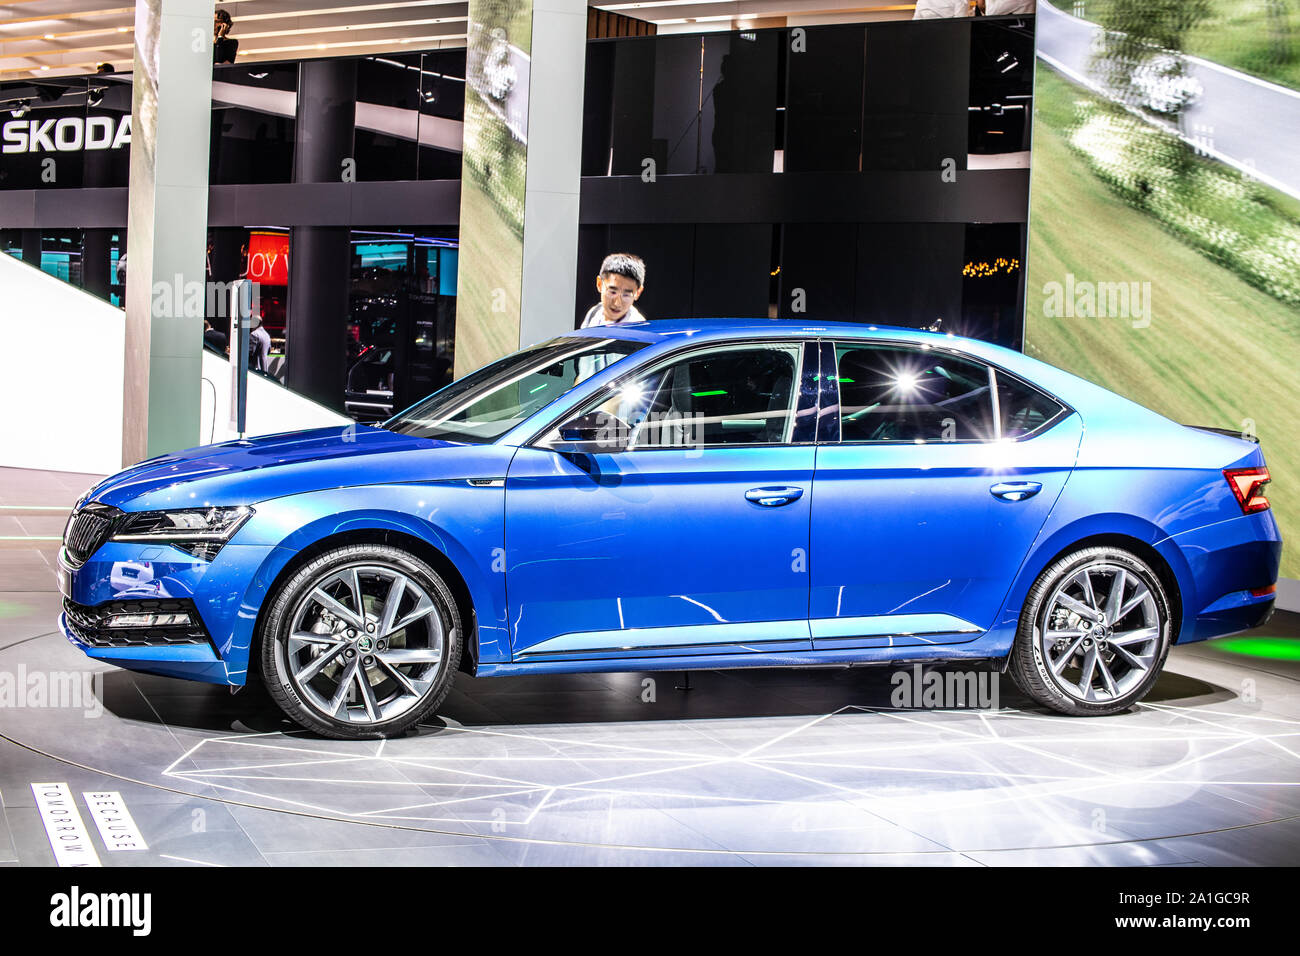 Skoda Superb High Resolution Stock Photography And Images Alamy